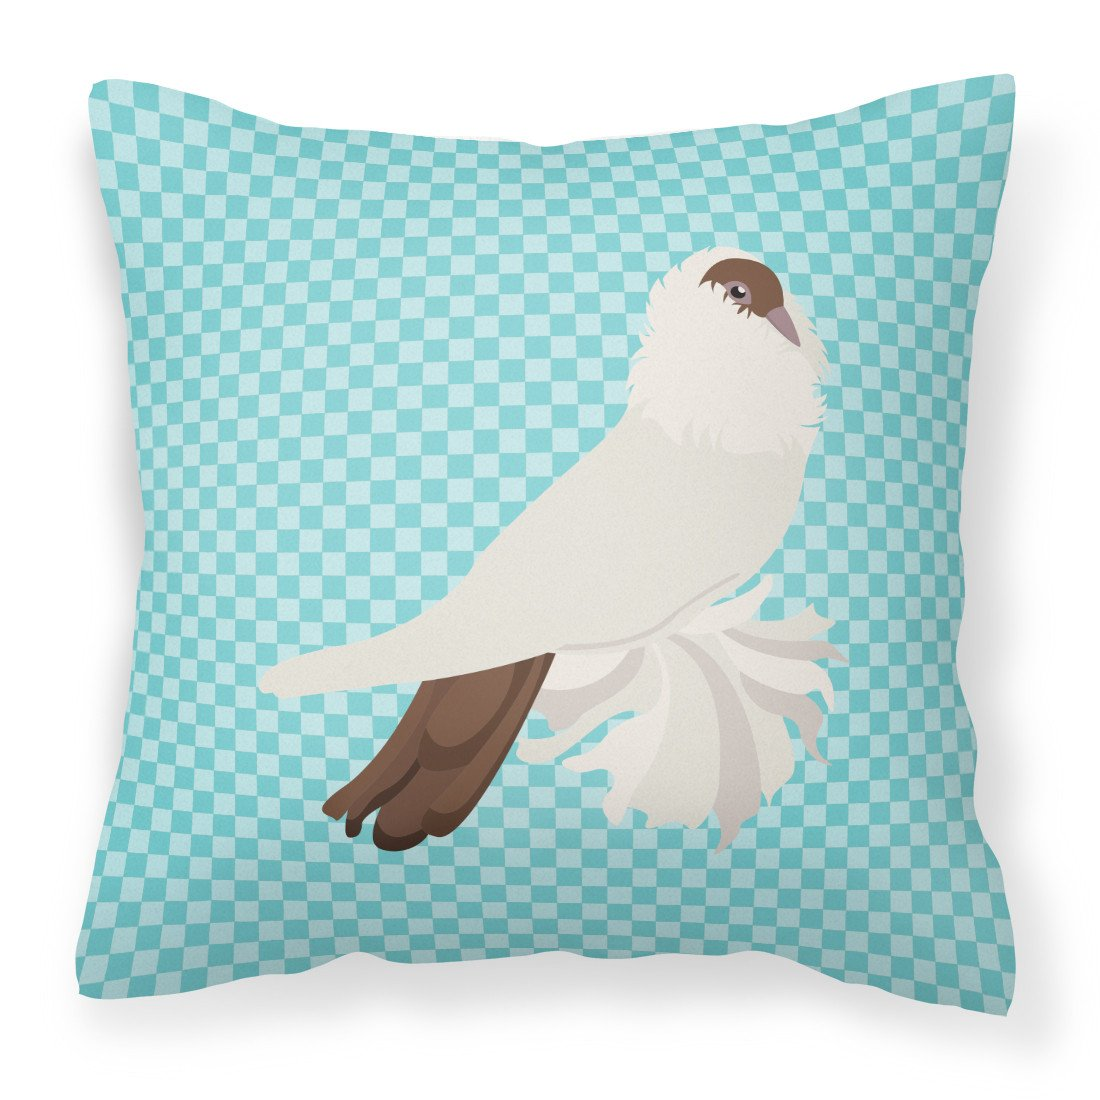 German Helmet Pigeon Blue Check Fabric Decorative Pillow BB8118PW1818 by Caroline's Treasures